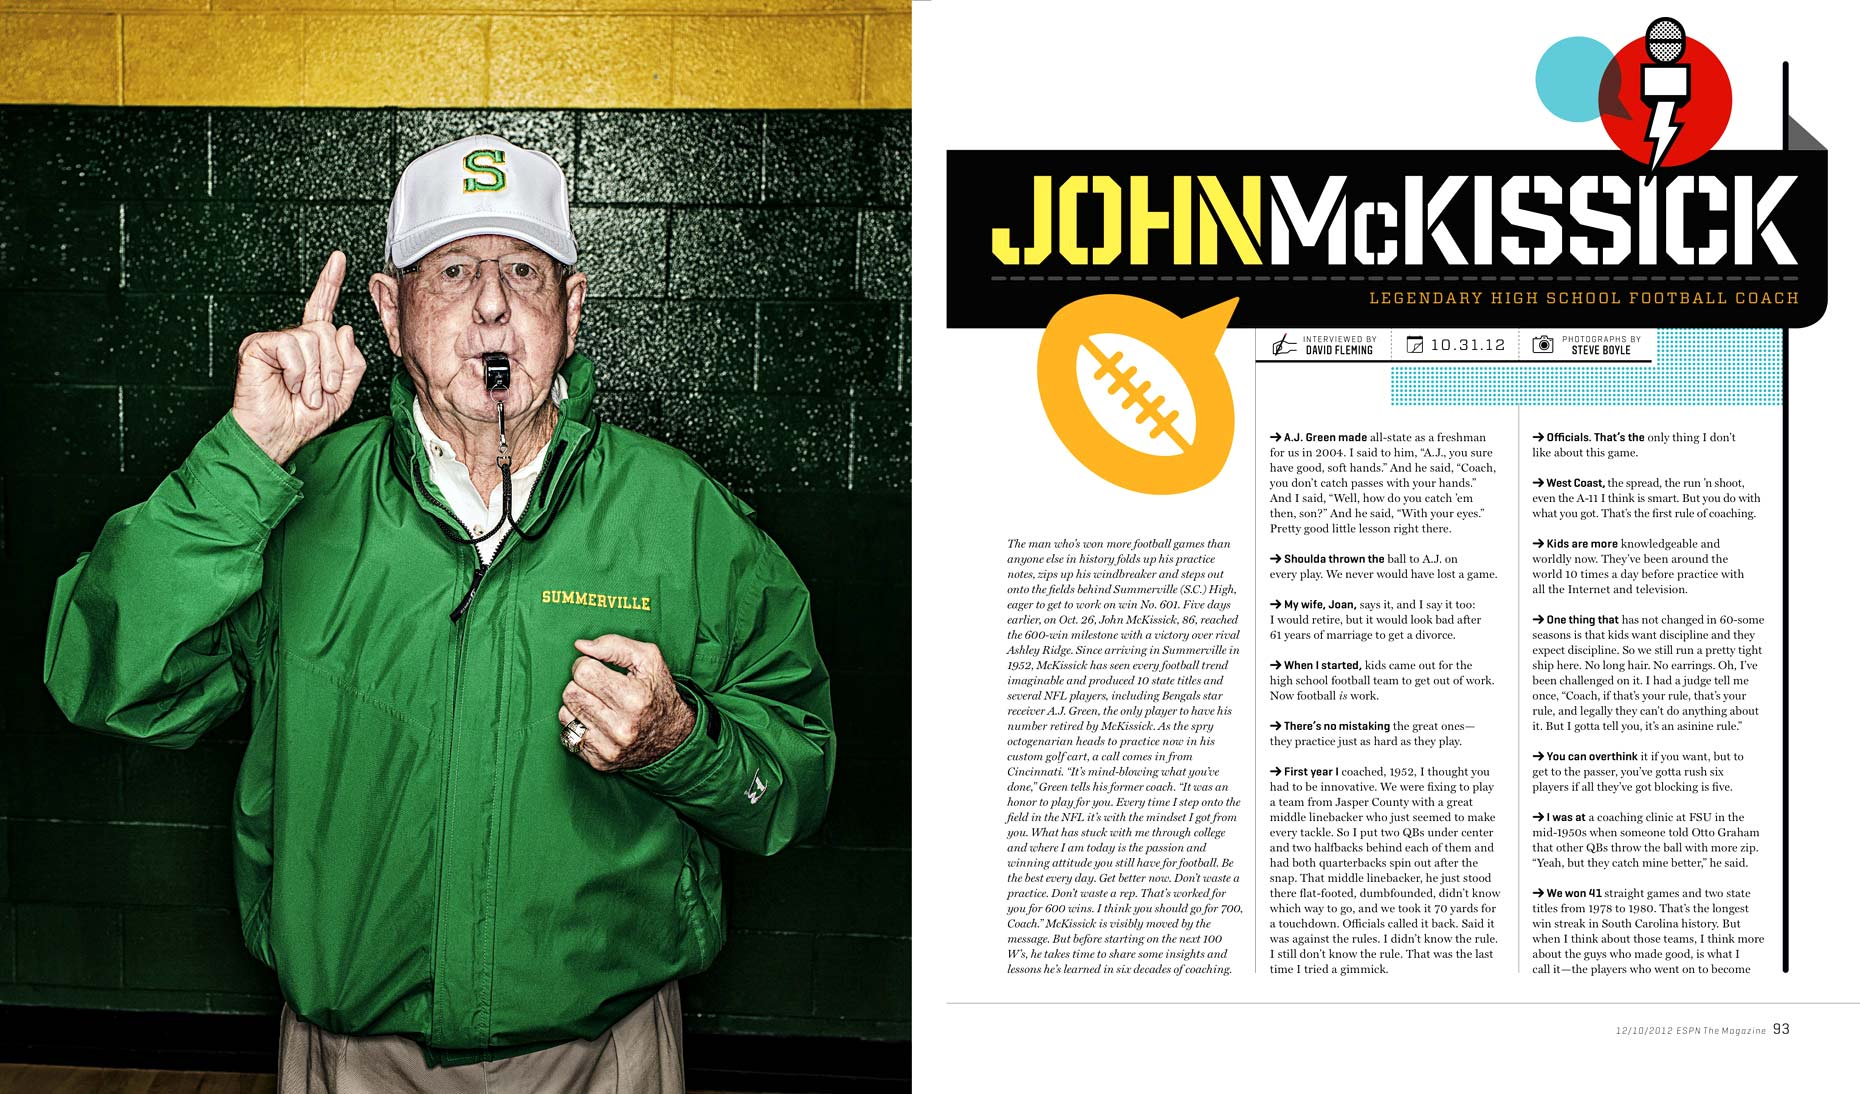 Philadelphia Photographer STEVE BOYLE - ESPN the Magazine